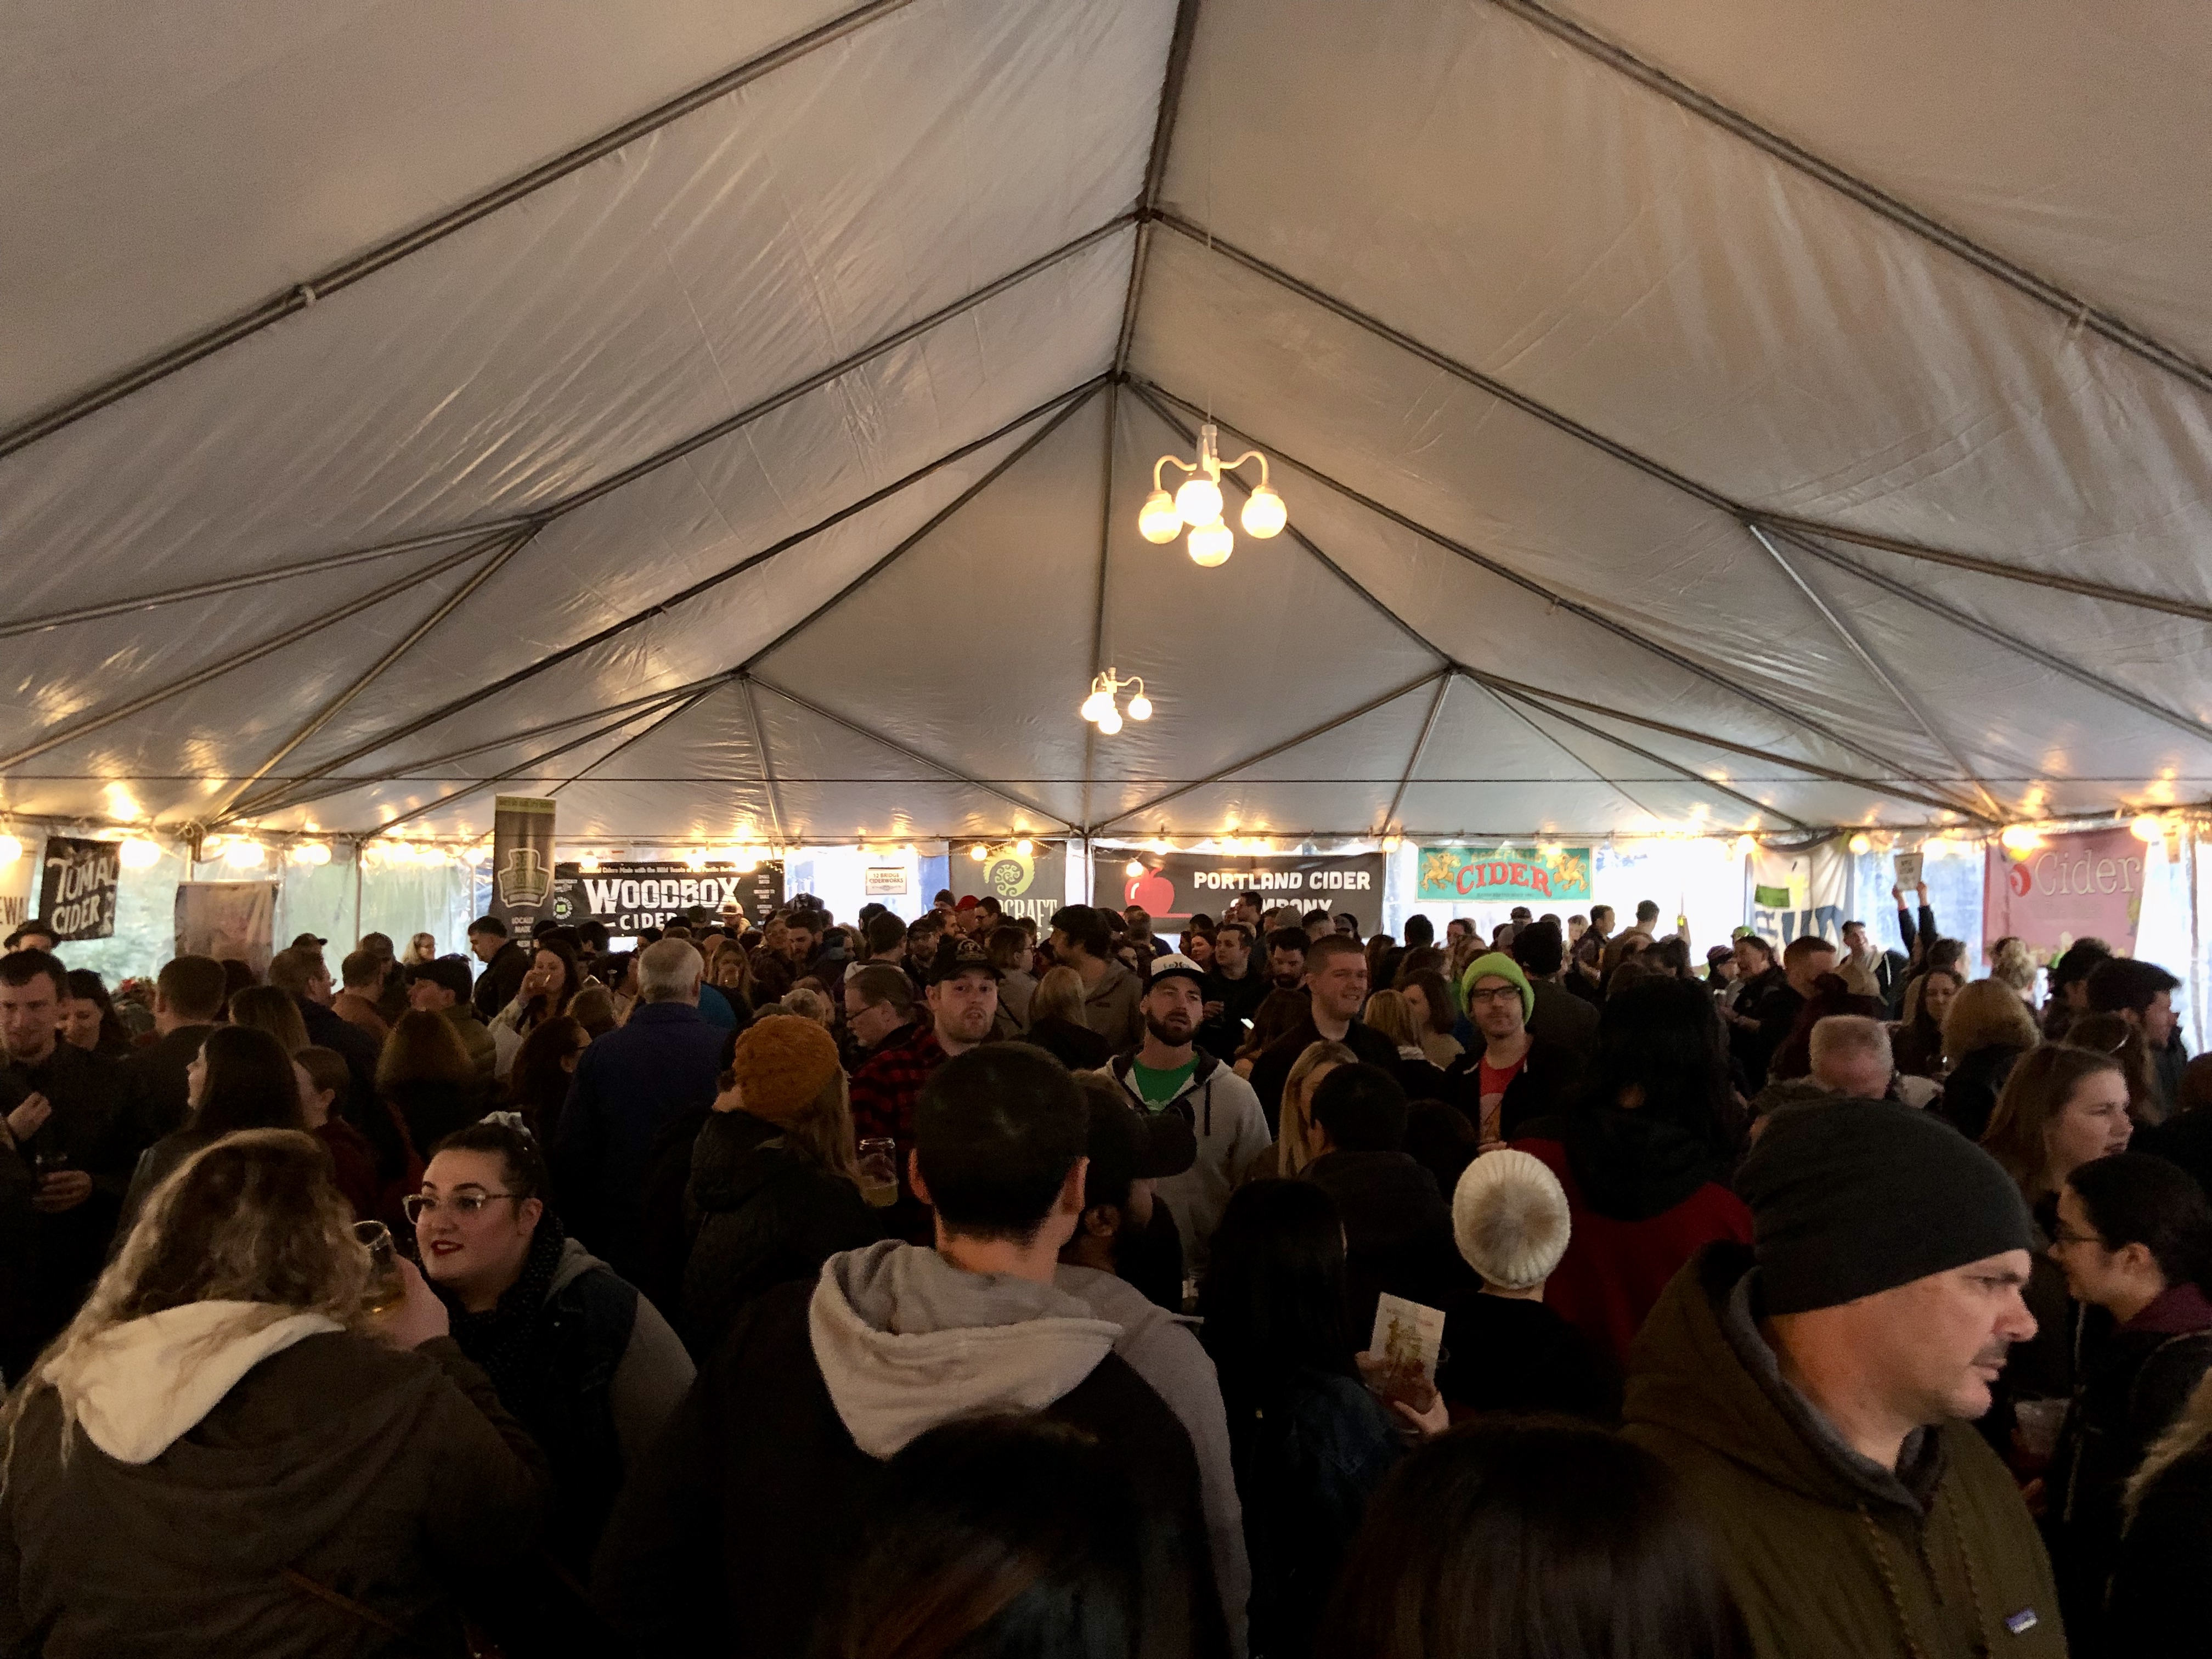 The festive crowd at the McMenamins Cornelius Pass Roadhouse Wassail Cider Festival.